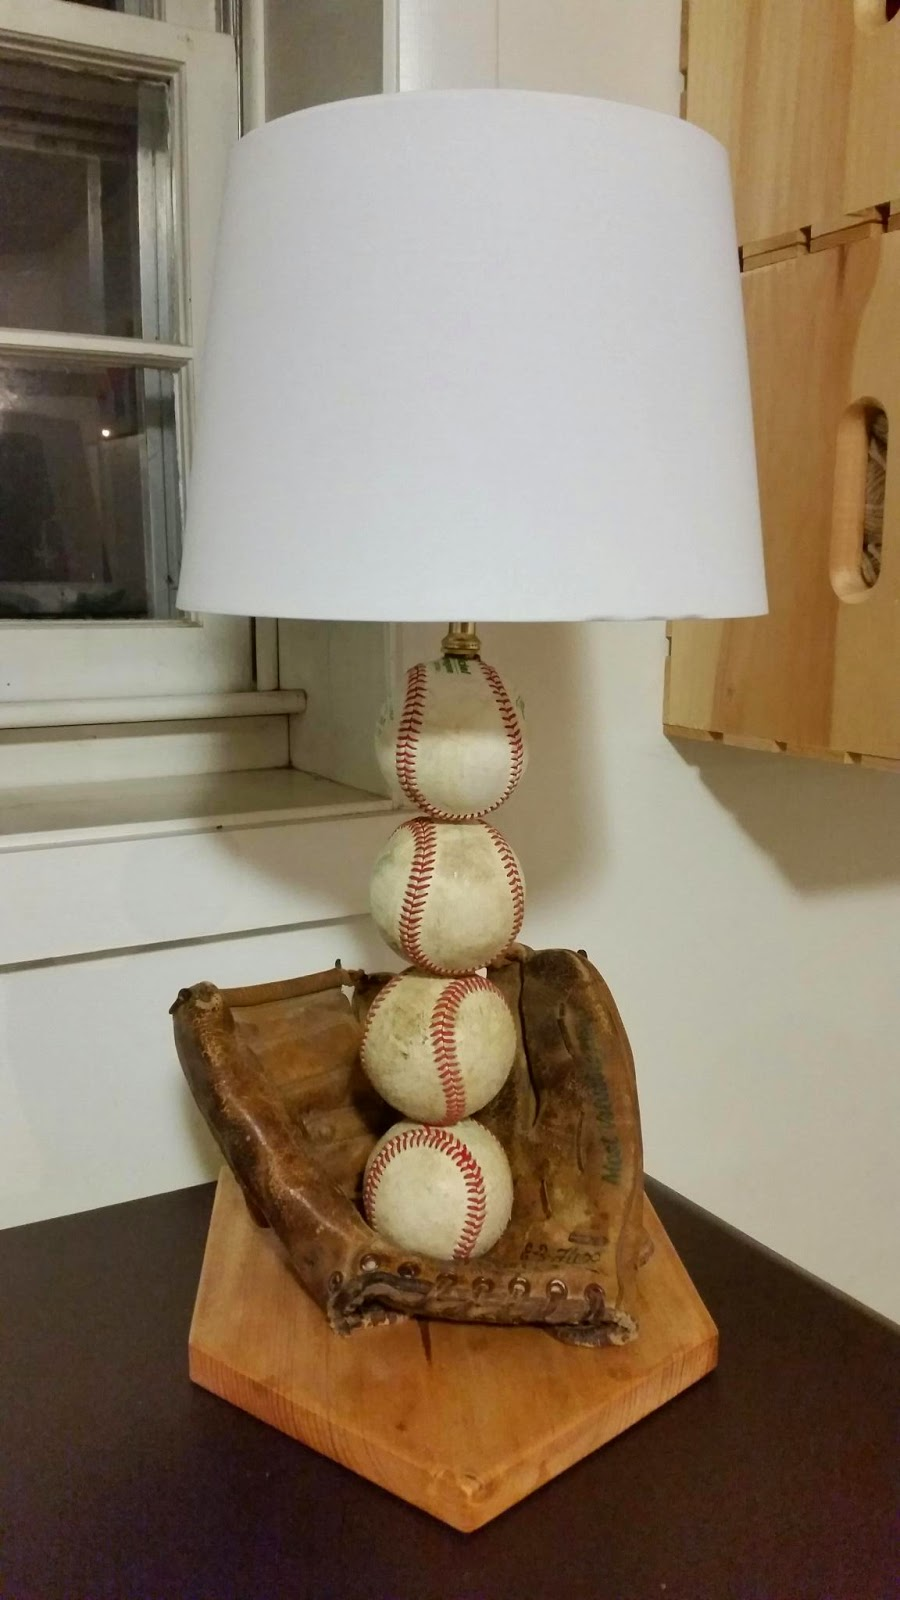 22 Doable DIY Projects For Men That Still Look Cool